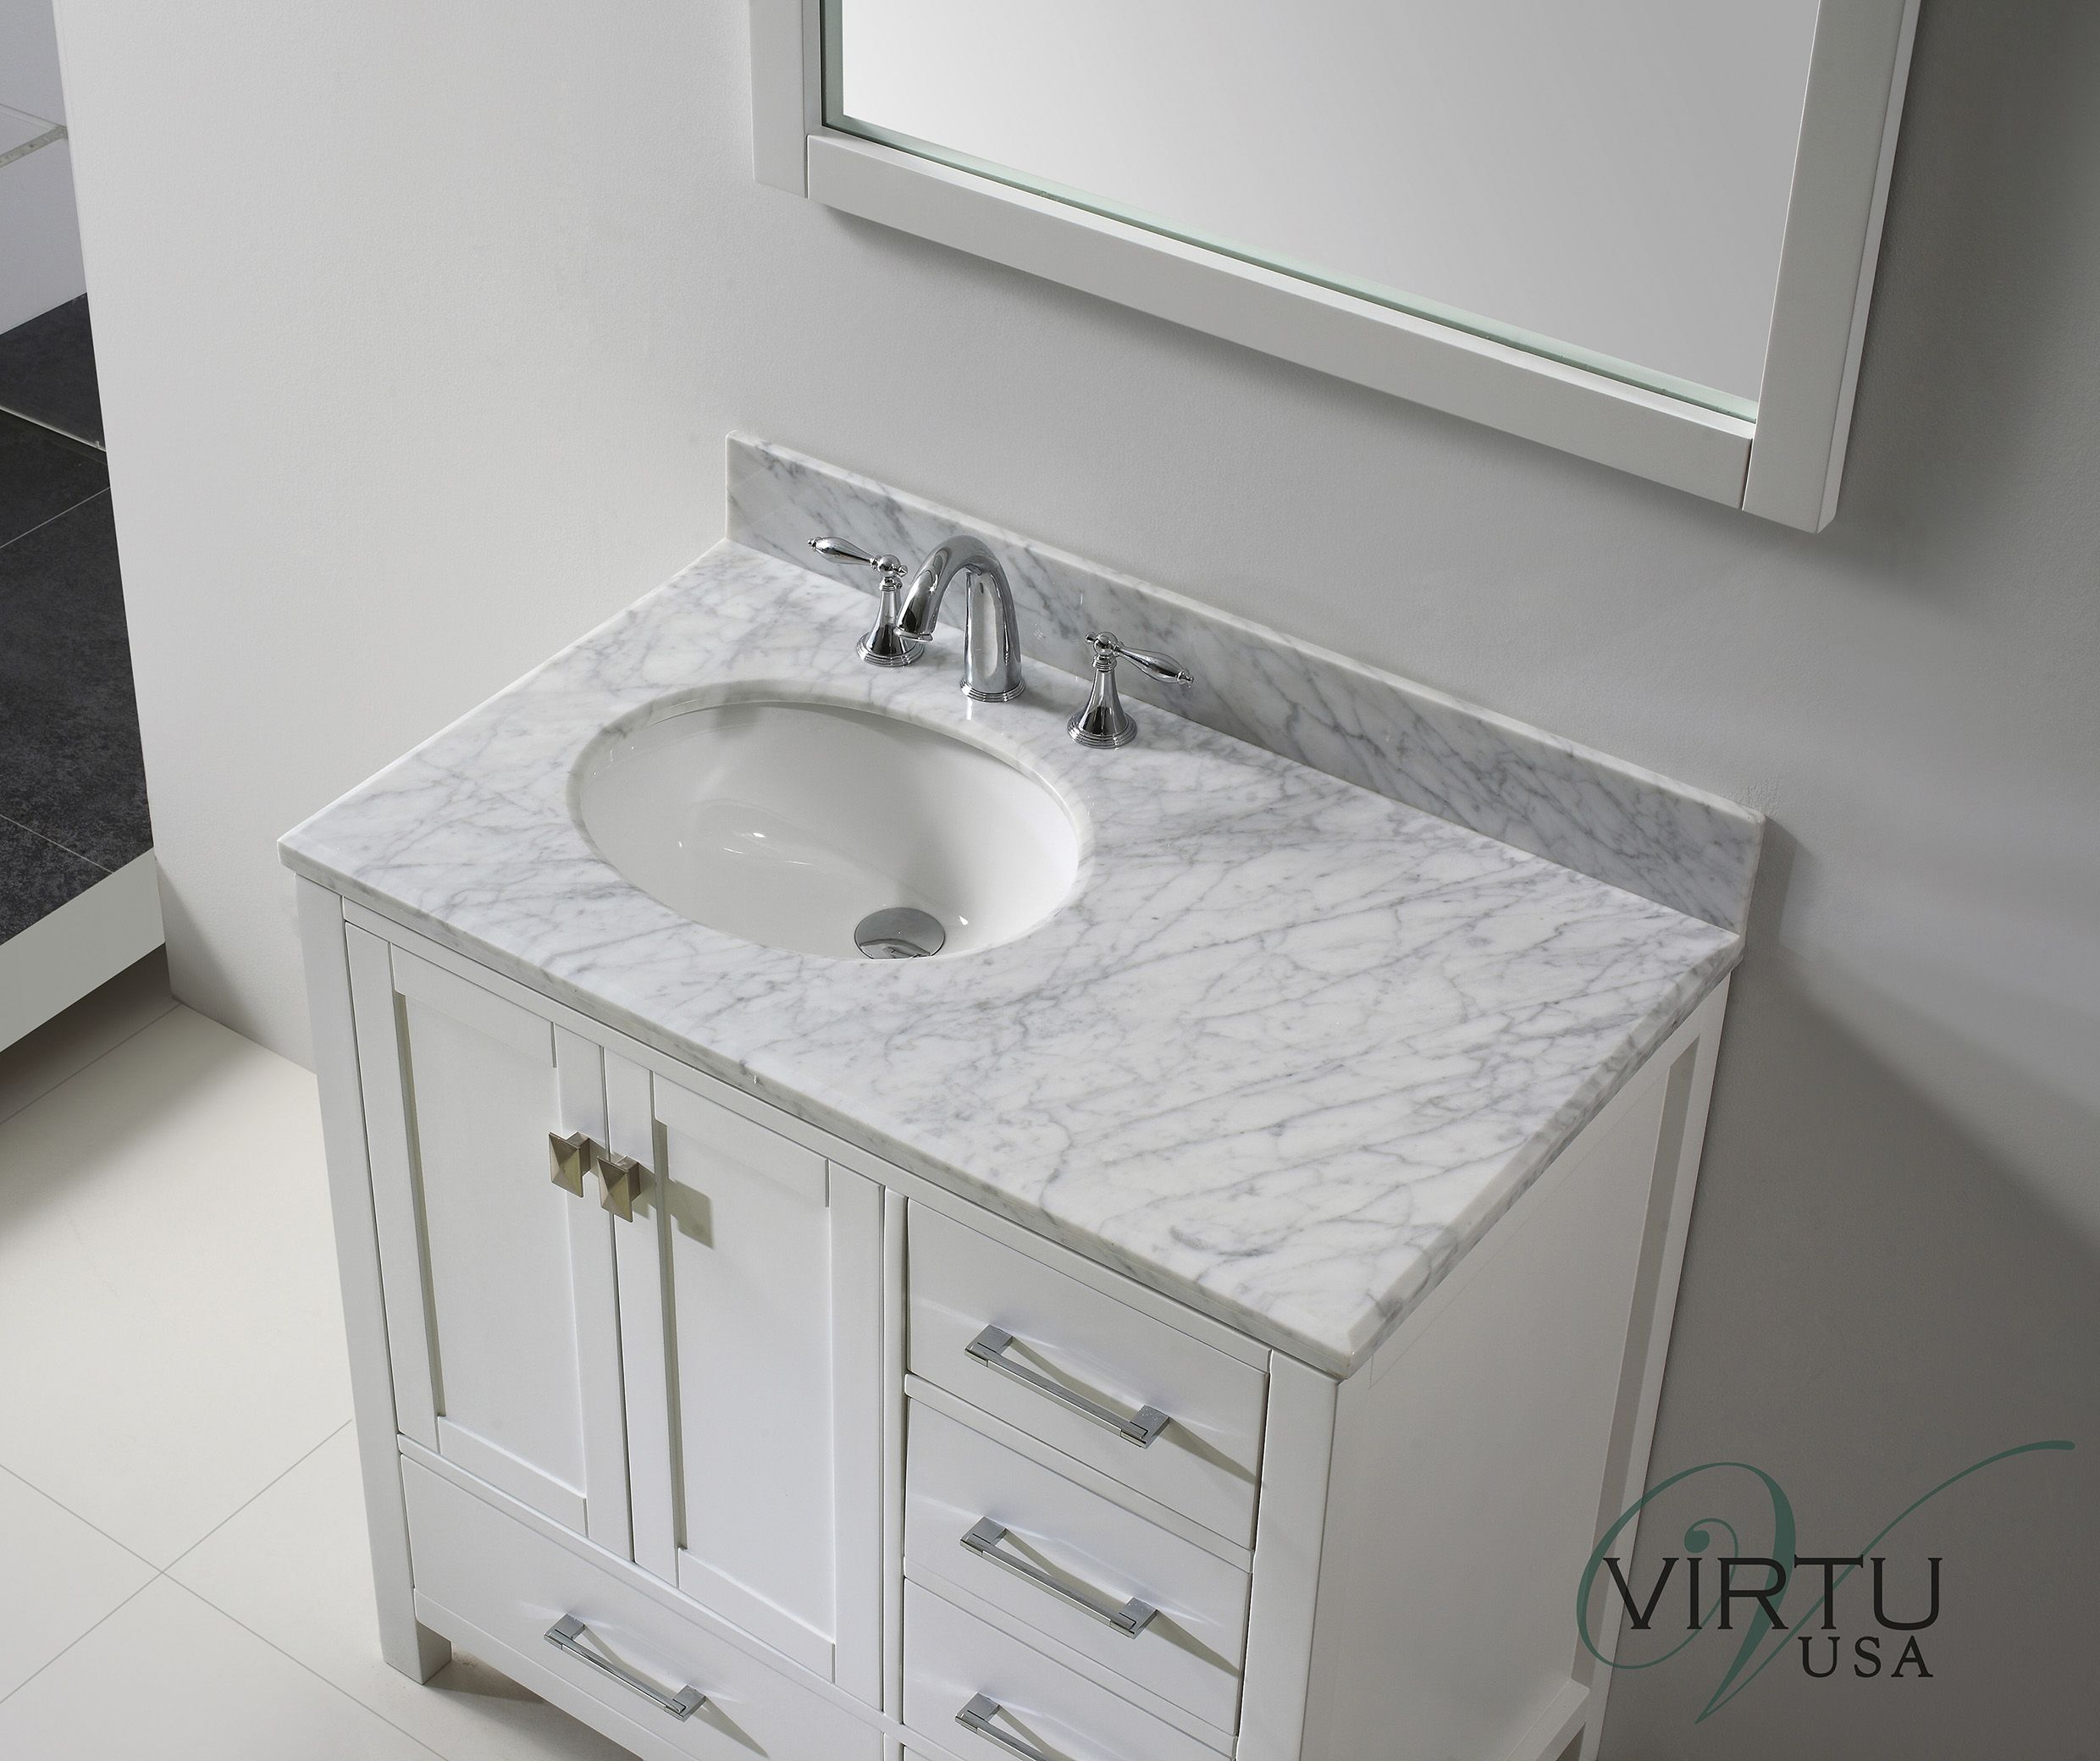 Attractive Bathroom Vanities With Tops White And Grey Granite Also White Wooden Panel 3 Dr With Images Small Bathroom Vanities White Vanity Bathroom Small Bathroom Storage